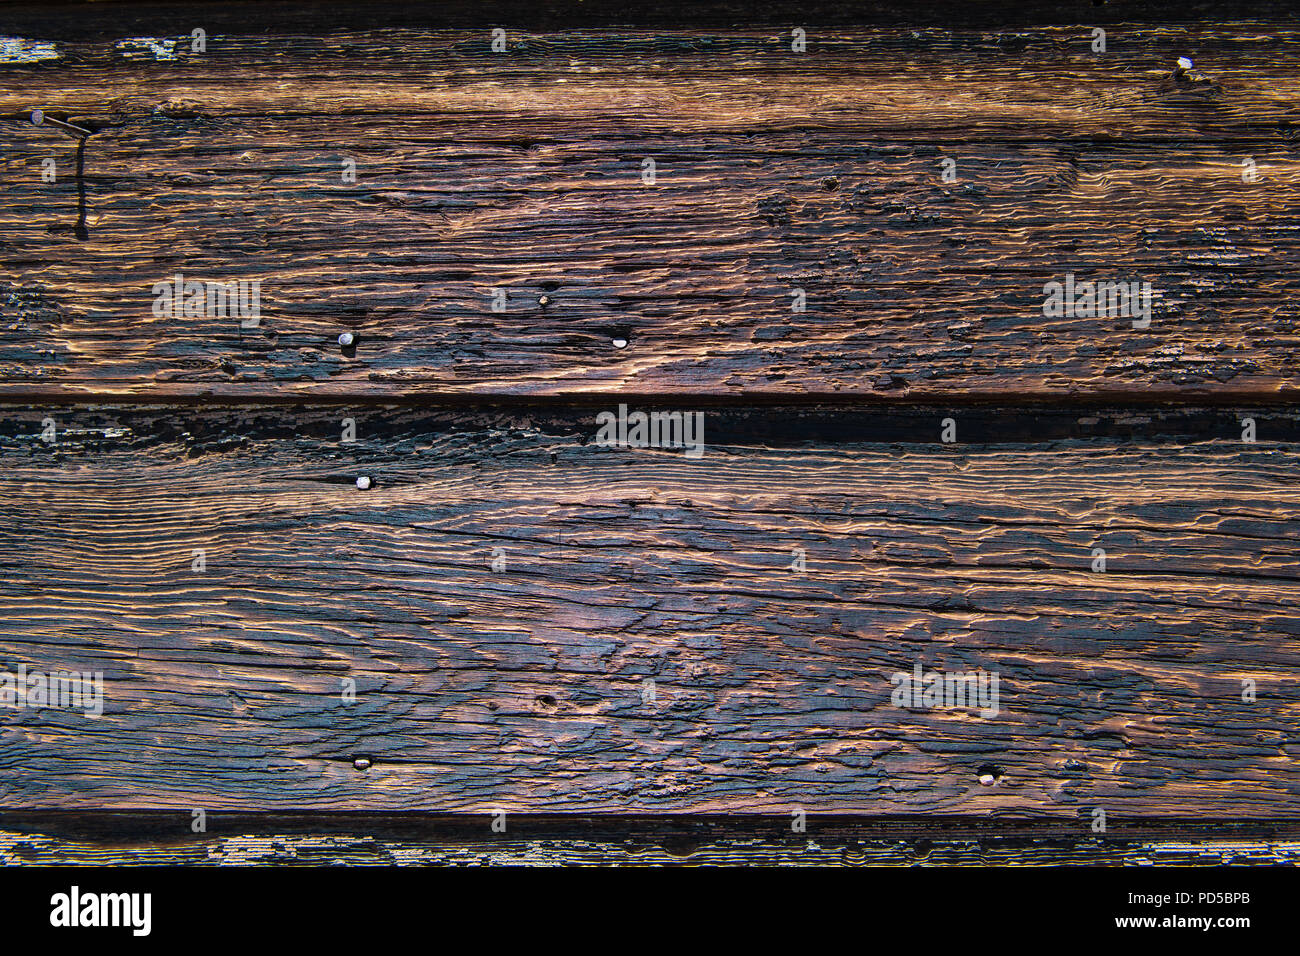 Weathered rustic wood plank background texture with yellow, black, and brown color tones - Stock Image